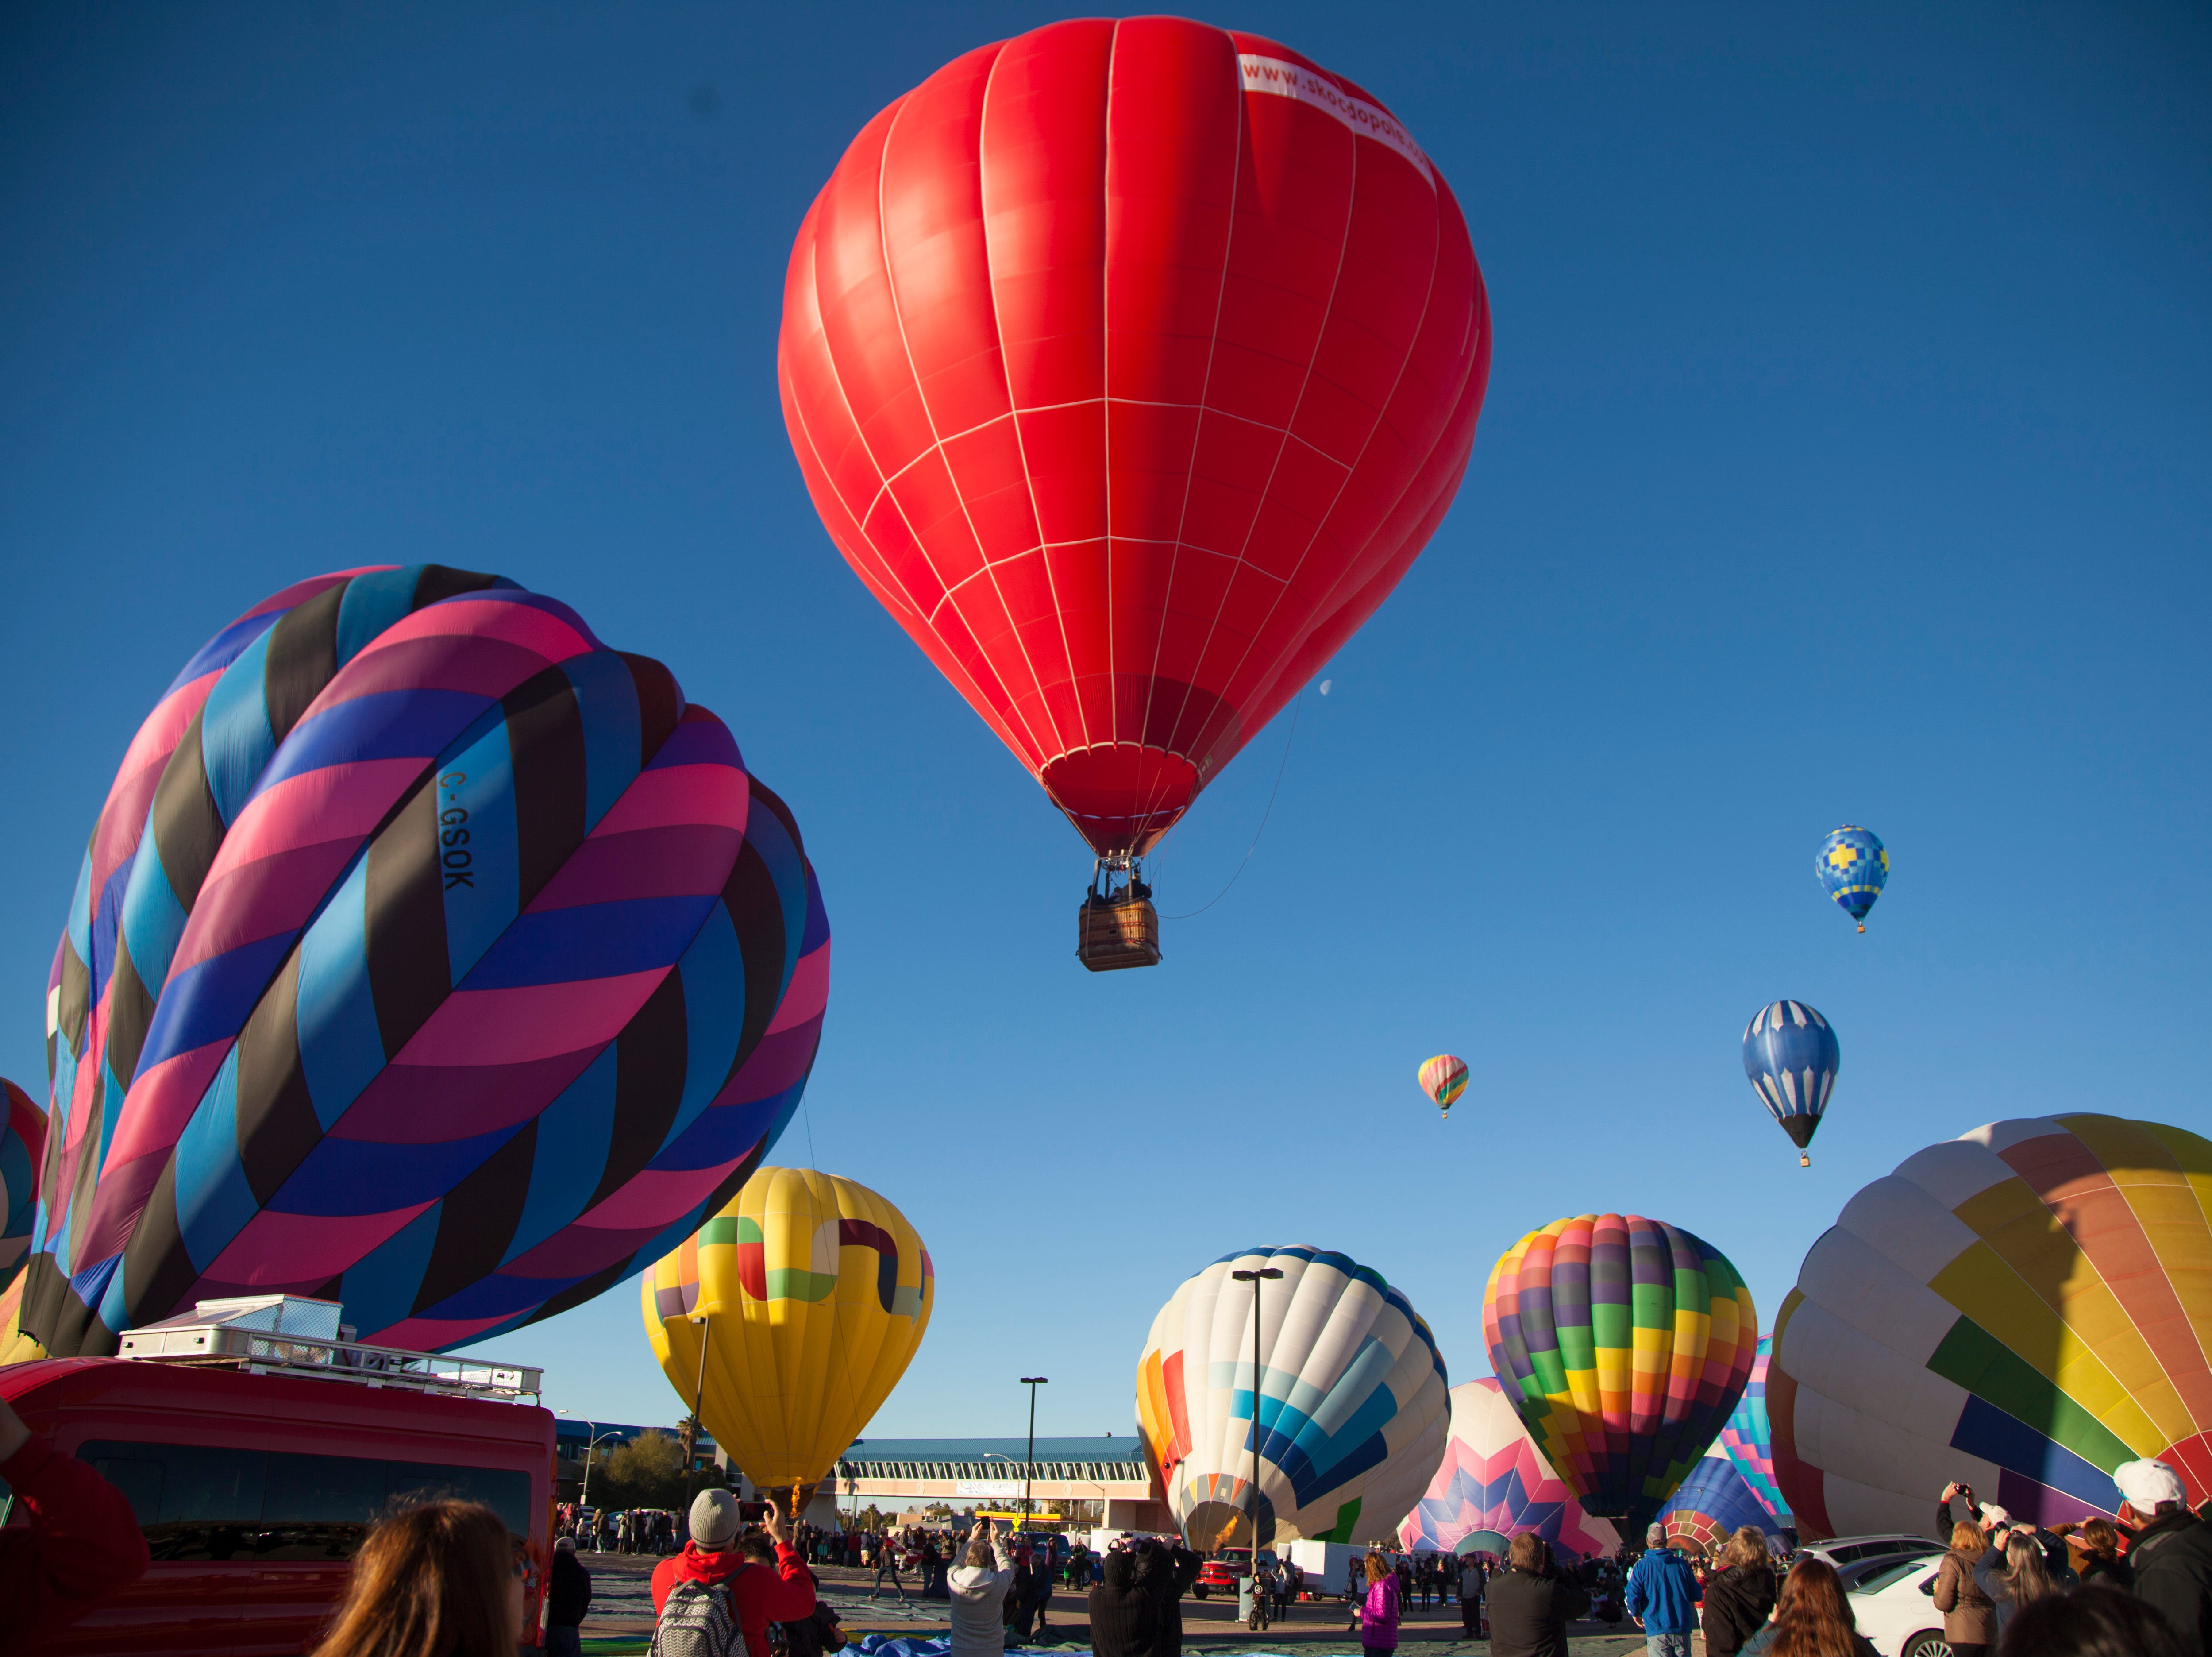 Hot air balloon fans gather at the Casablanca for the annual Mesquite Balloon Festival Saturday, Jan. 26, 2019.